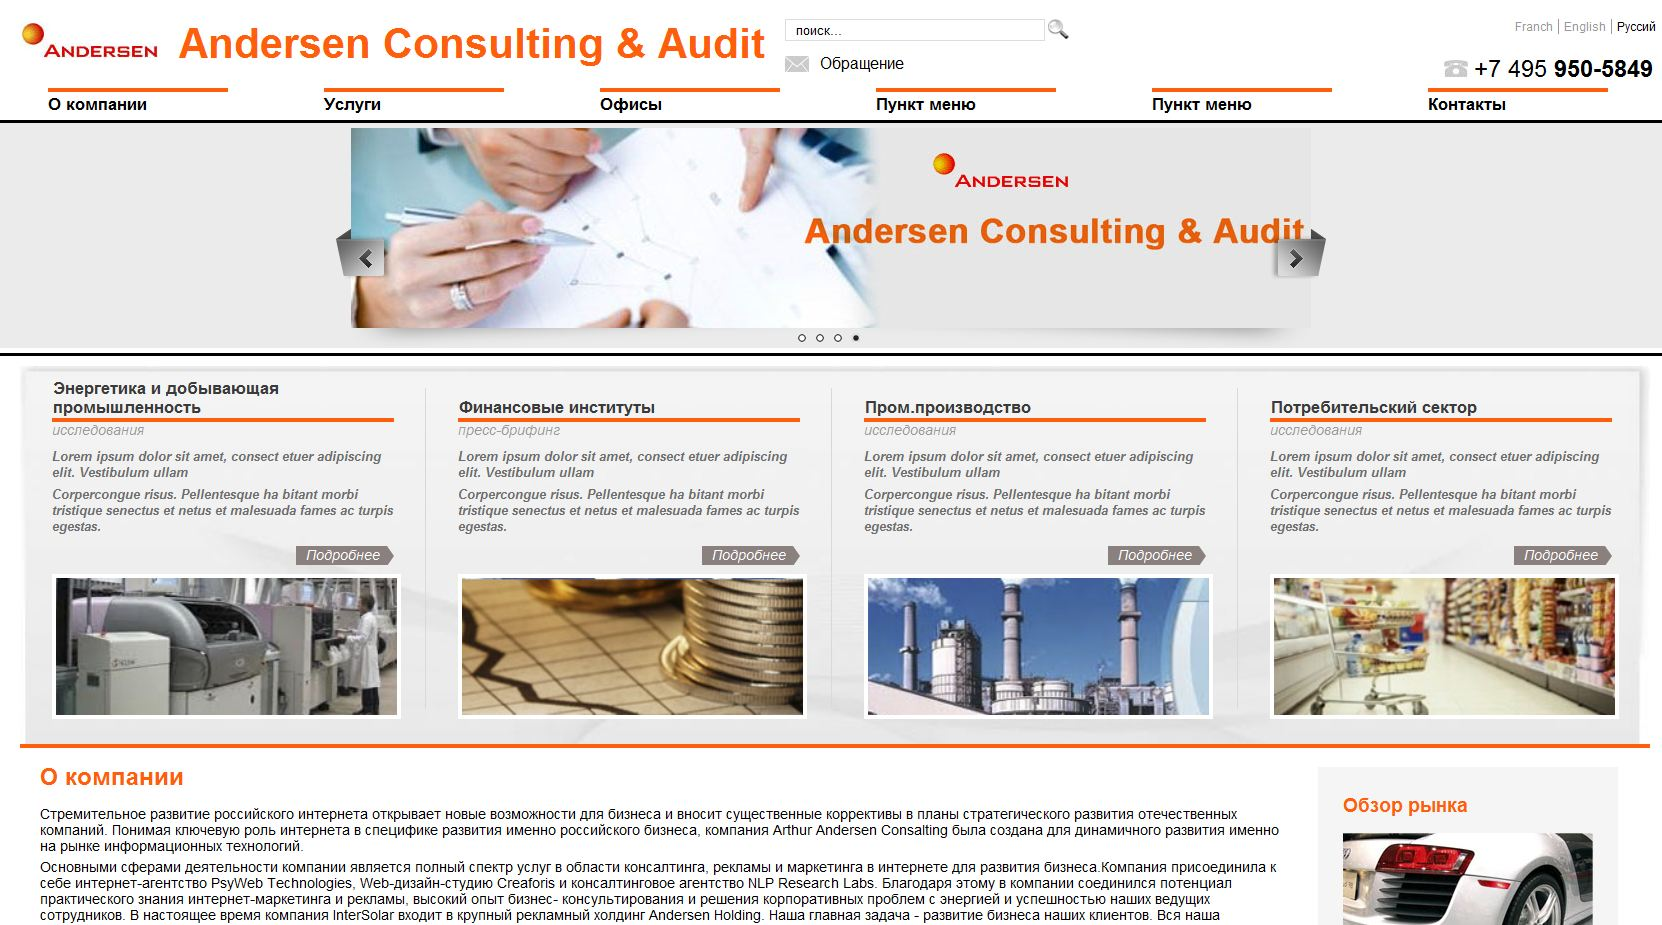 Andersen Consulting & Audit